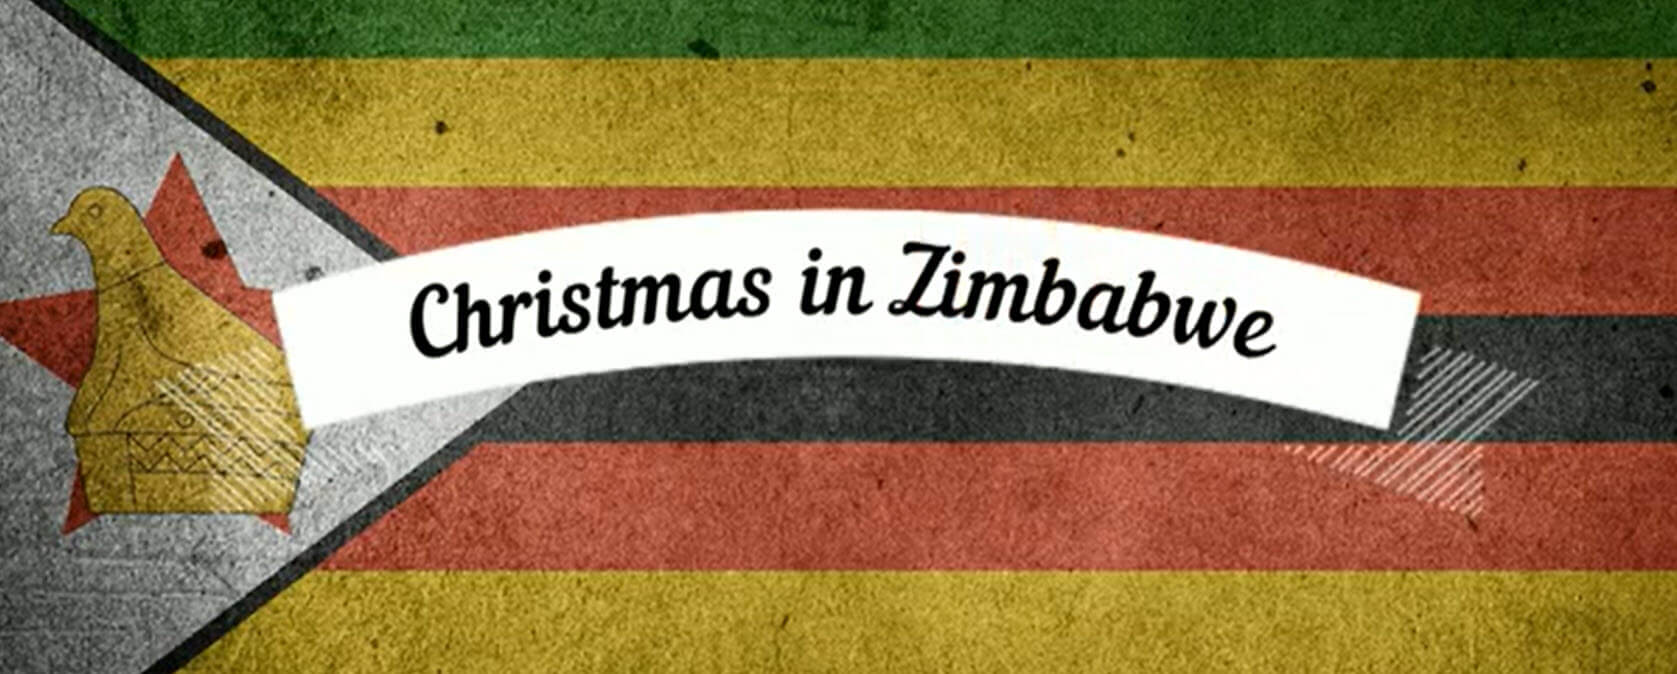 Christmas in Zimbabwe - Christmas Around The World